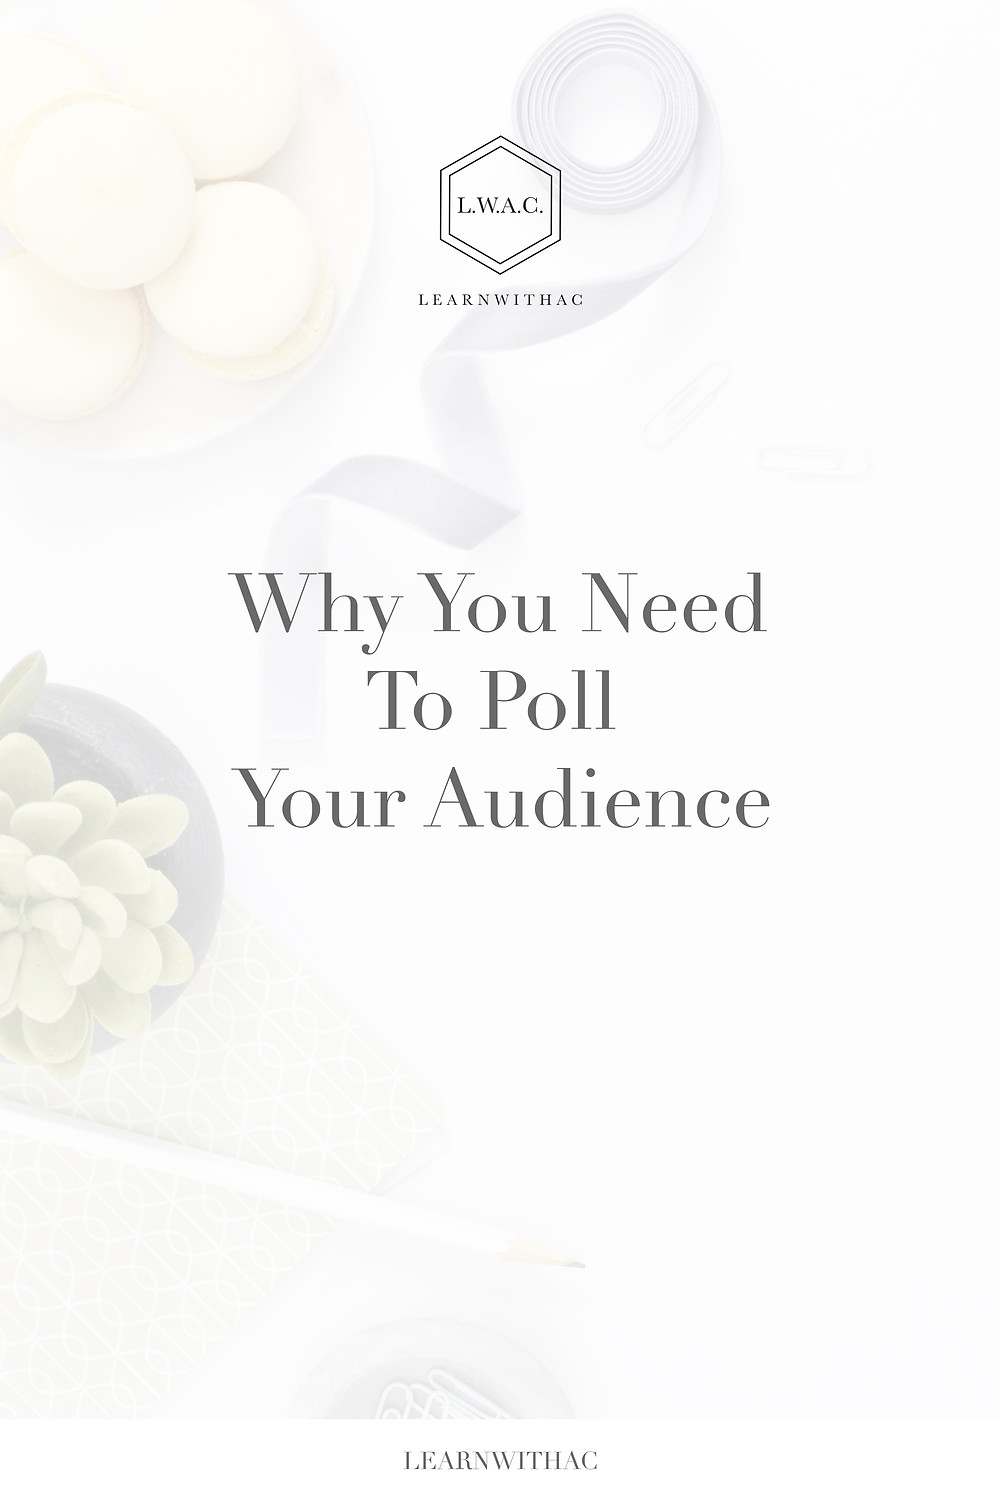 Why You Need To Poll Your Audience